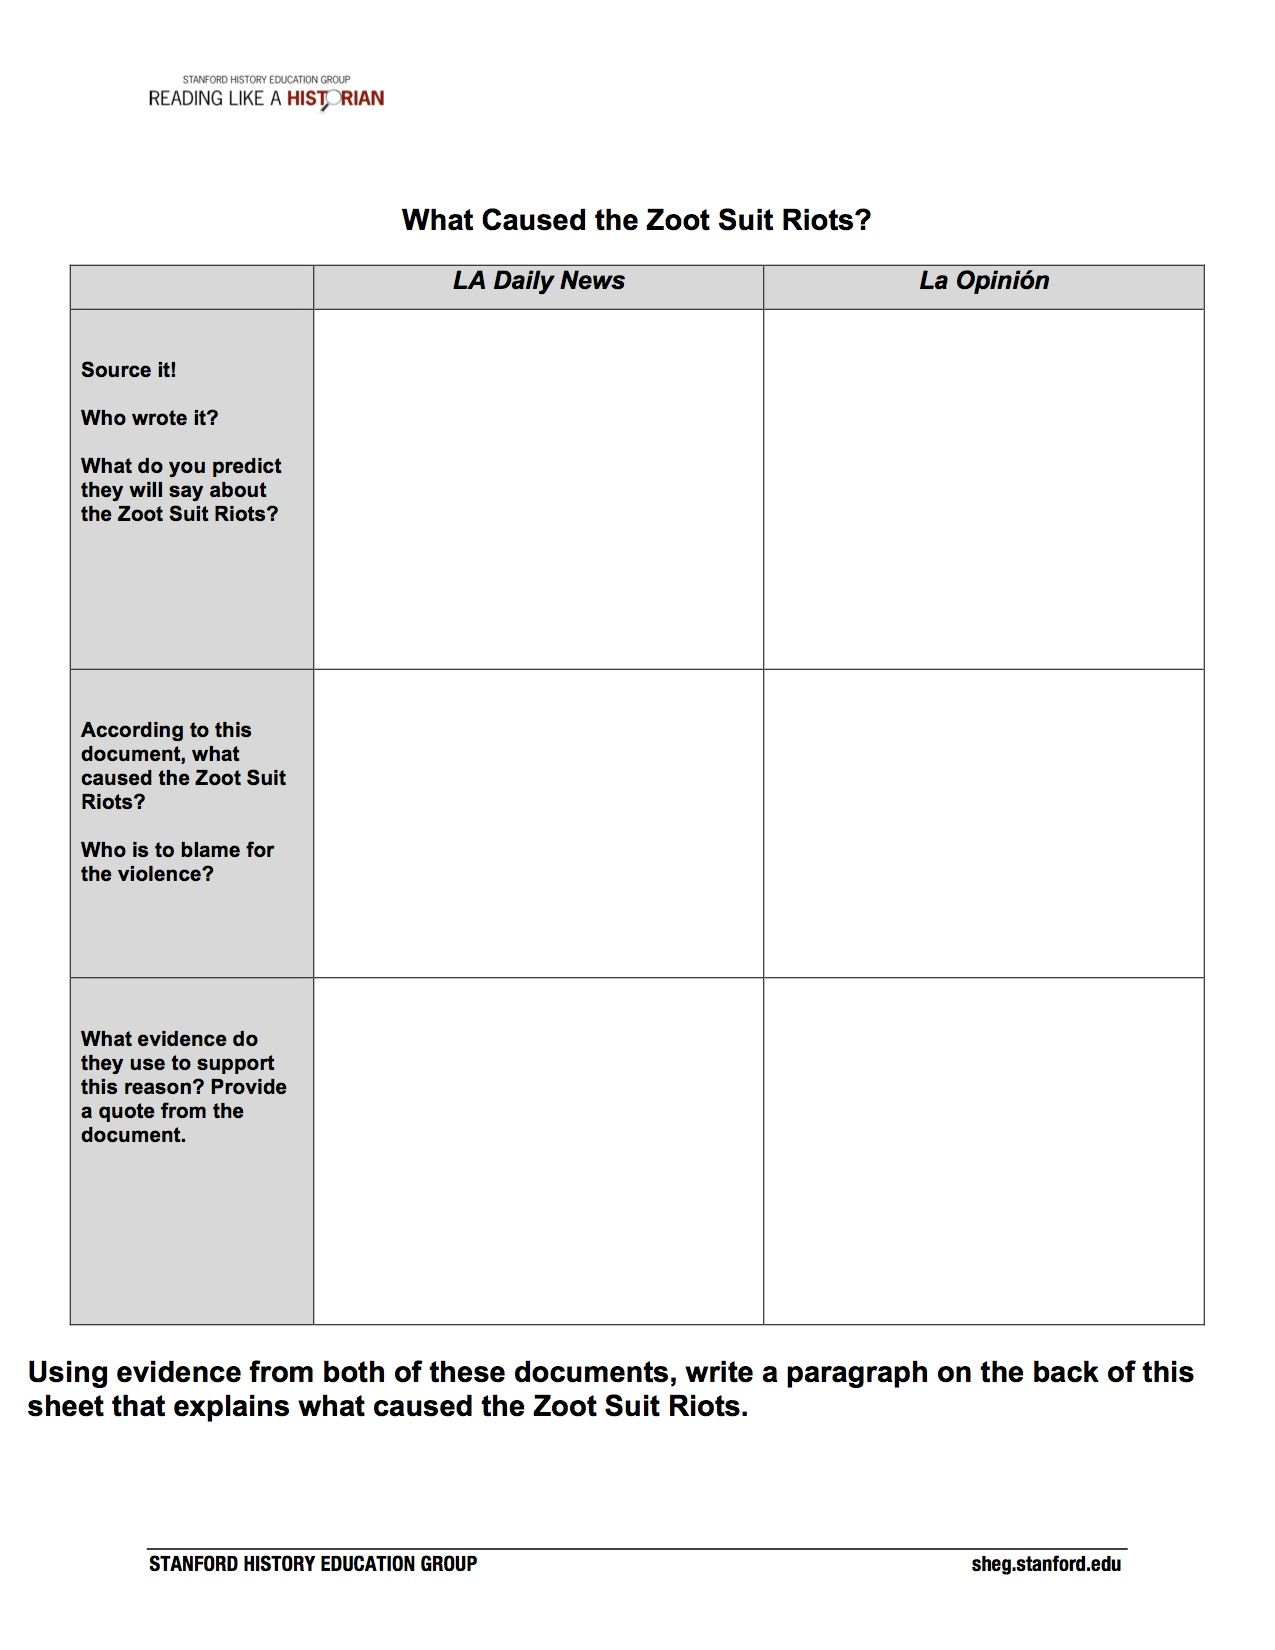 Reading Like A Historian Worksheet Answers